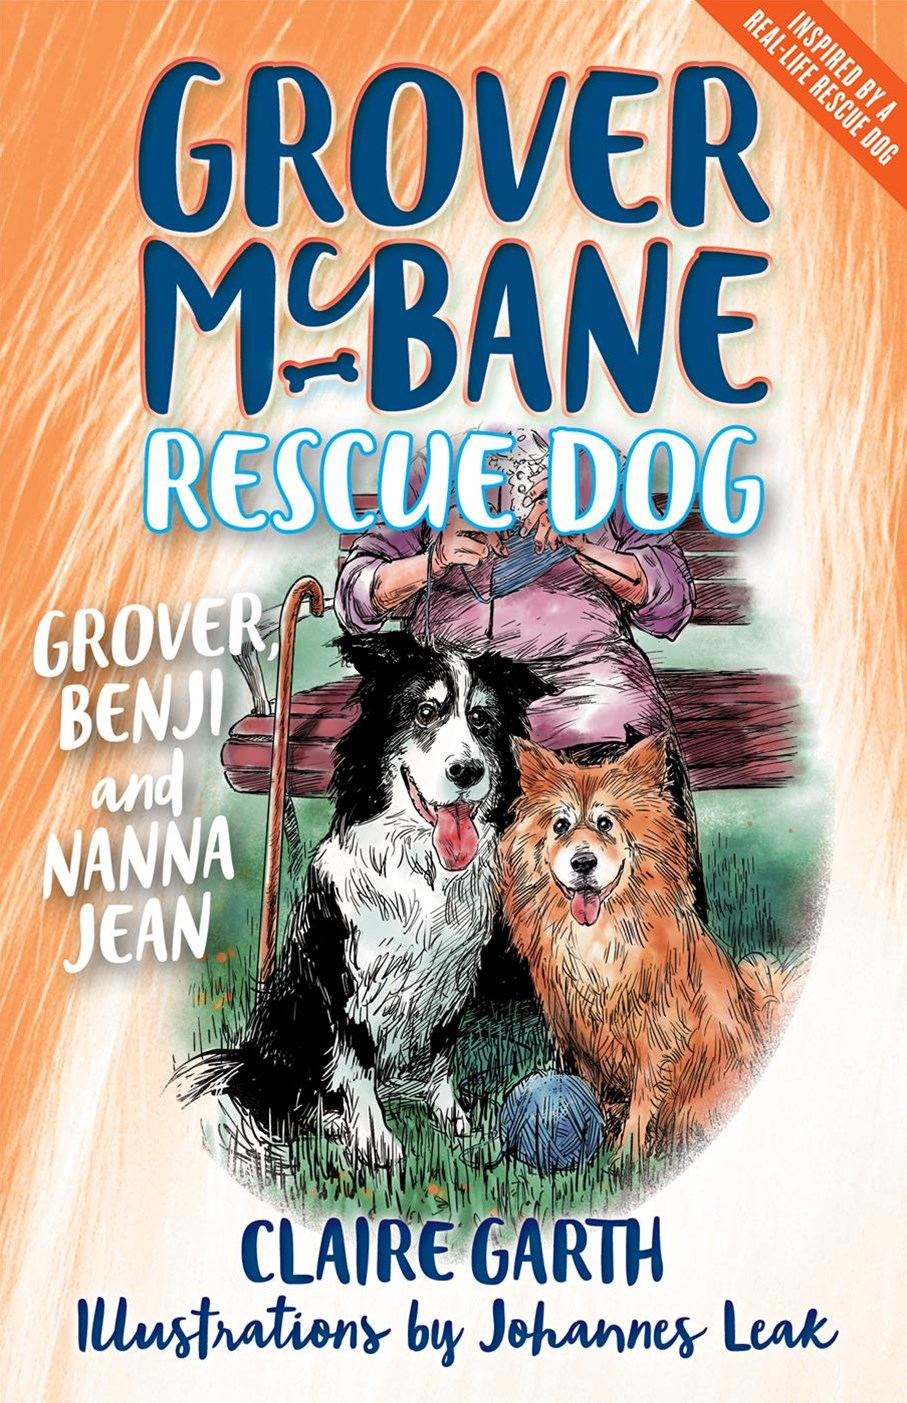 Grover McBane Rescue Dog: Grover, Benji and Nanna Jean (Book